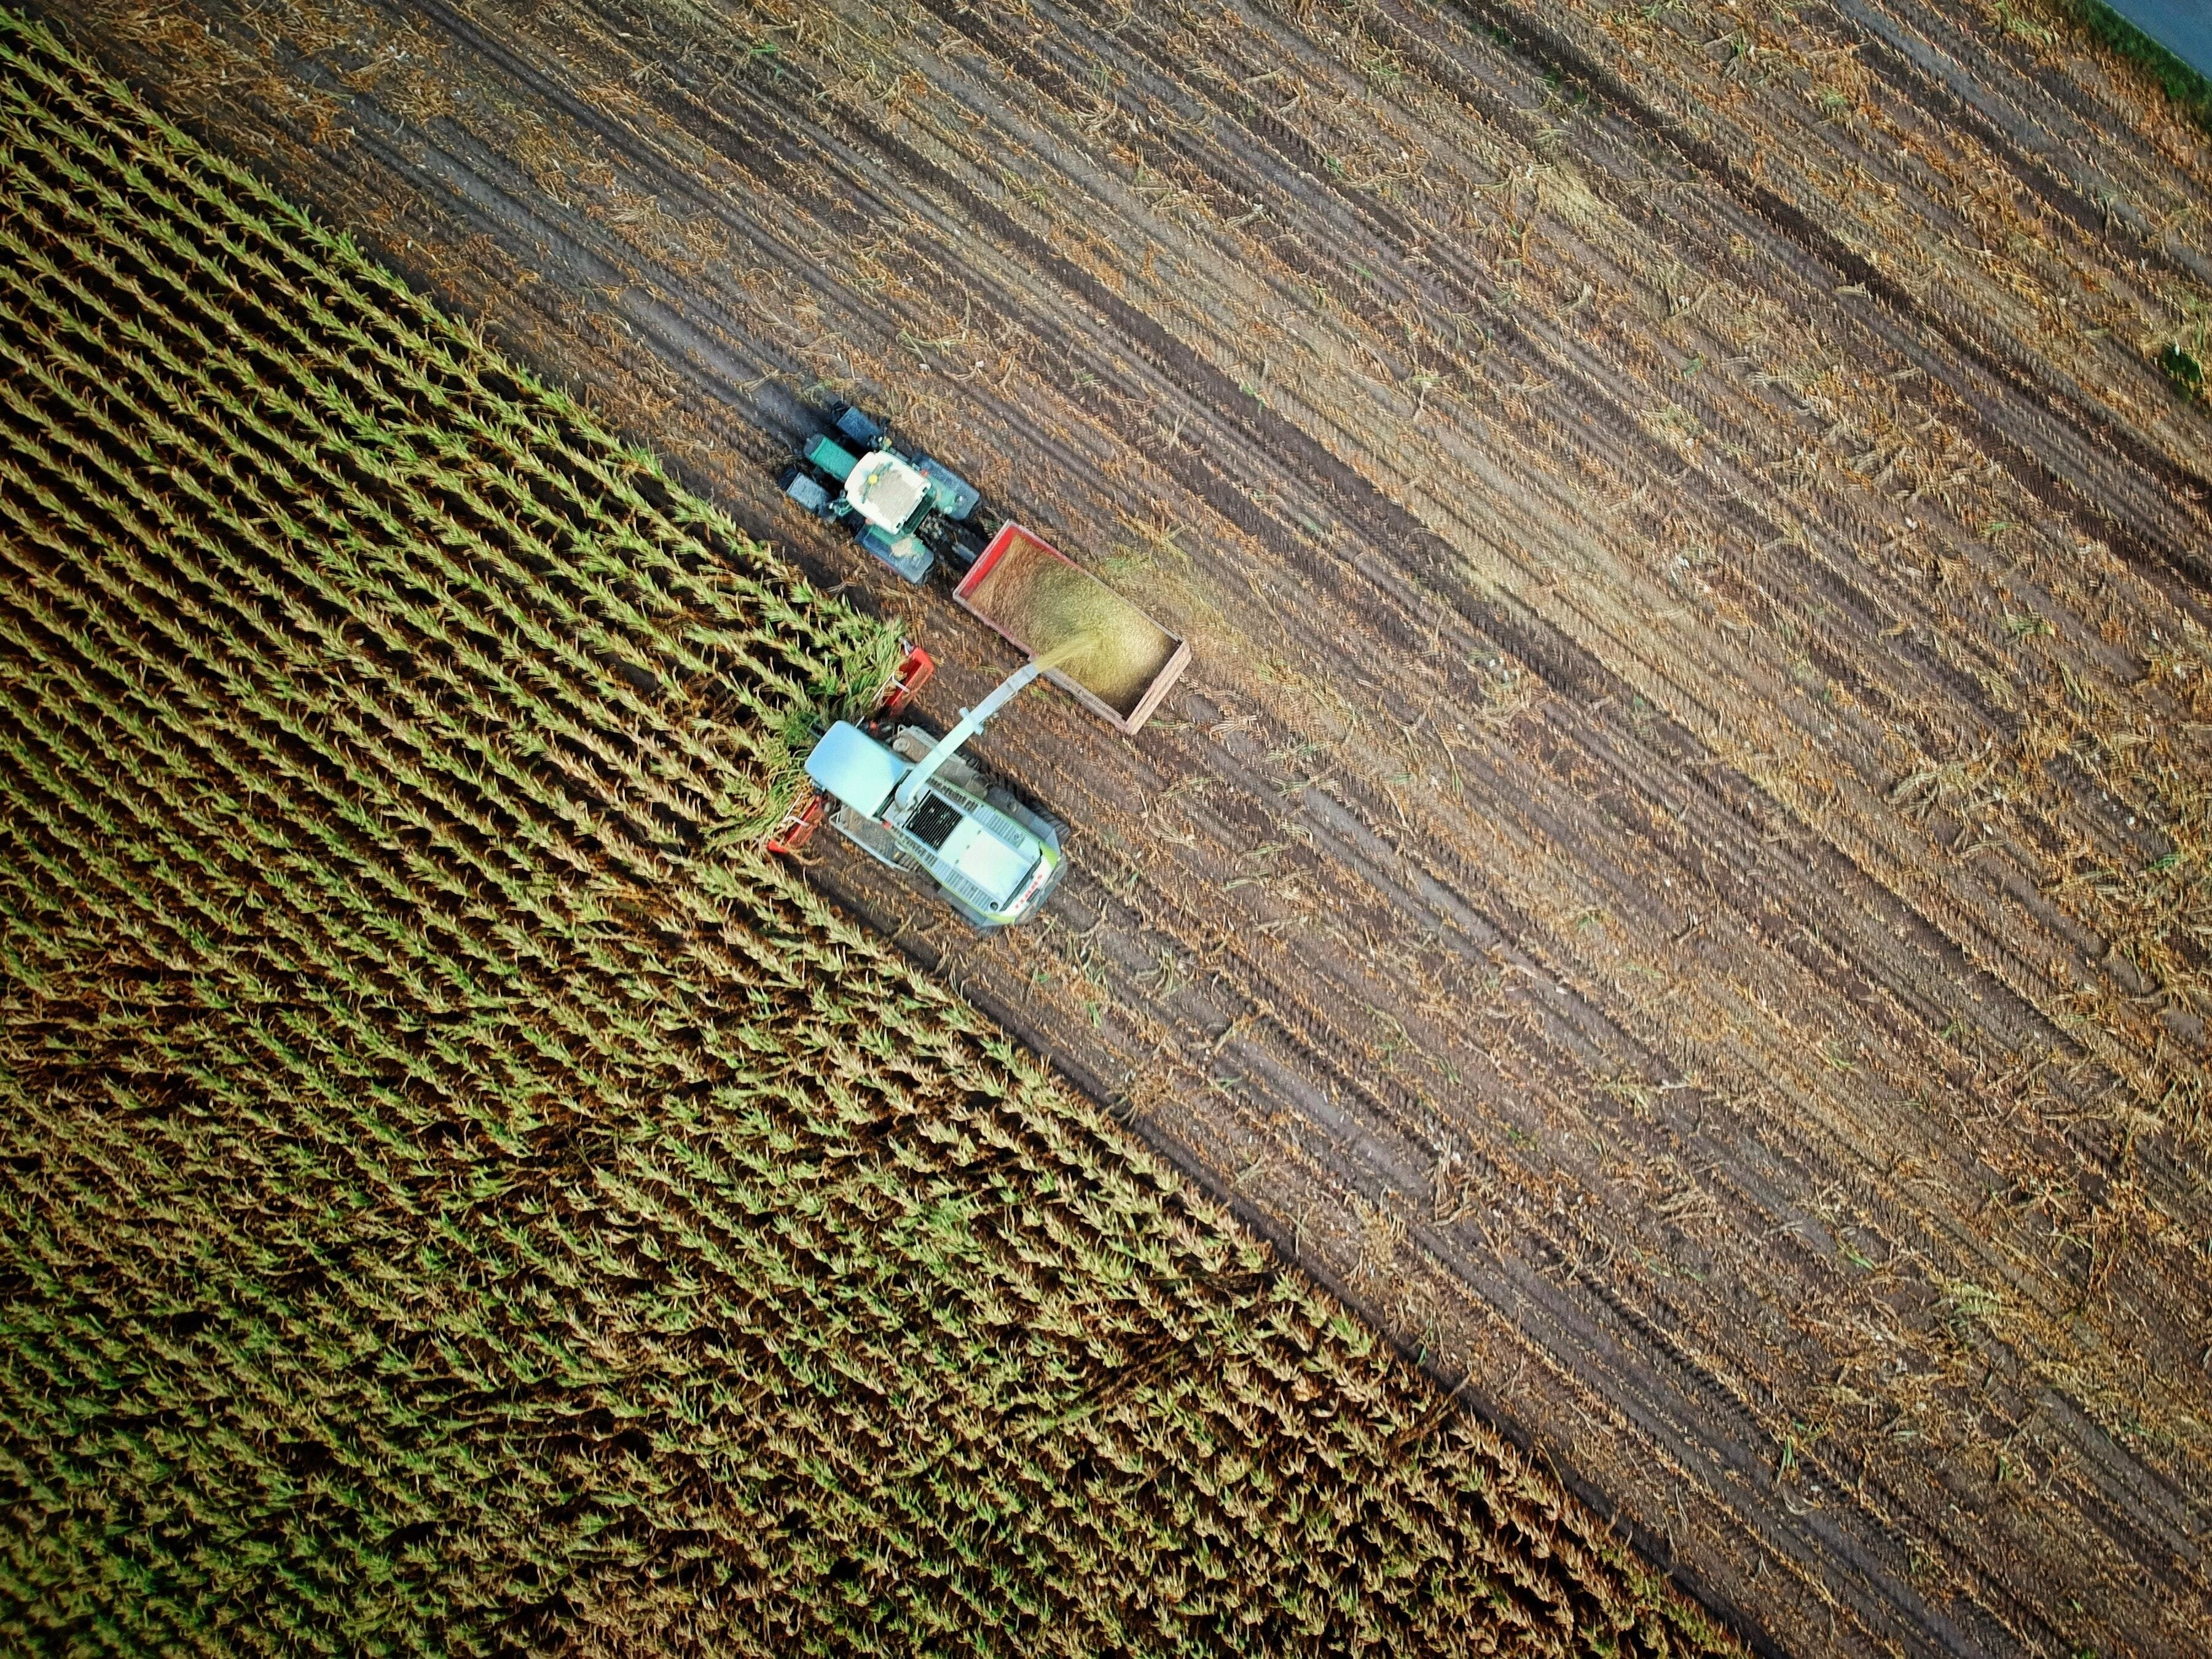 A picture of a tractor harvesting crops